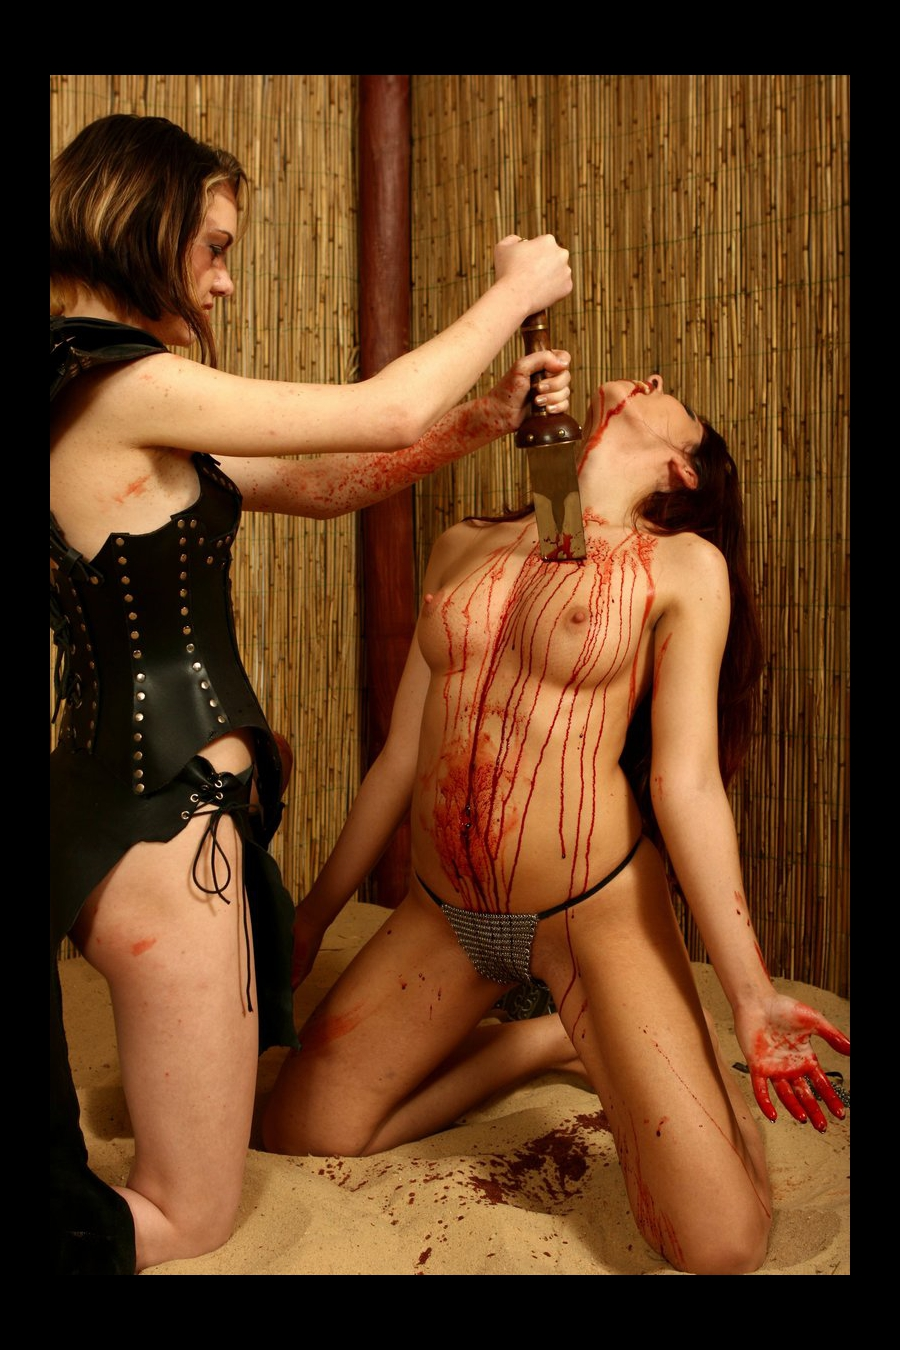 Snuff Motherless Stabbing pictures Free Porn pictures 2842